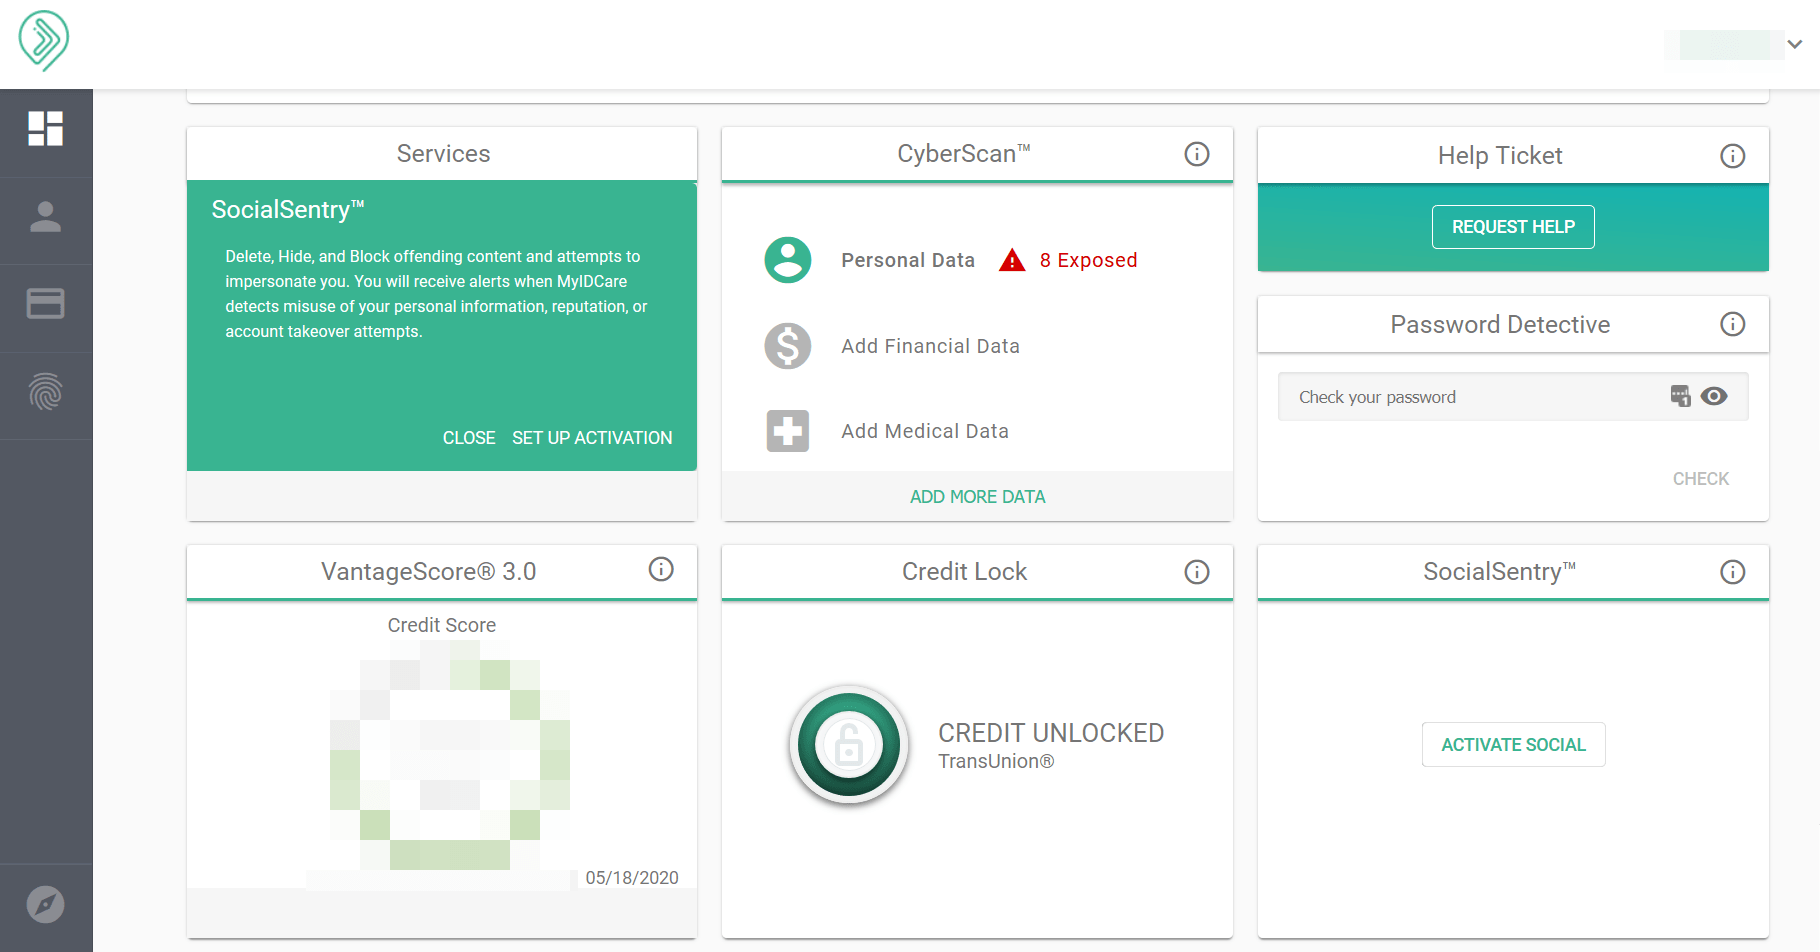 MyIDCare - Main Screen Overview